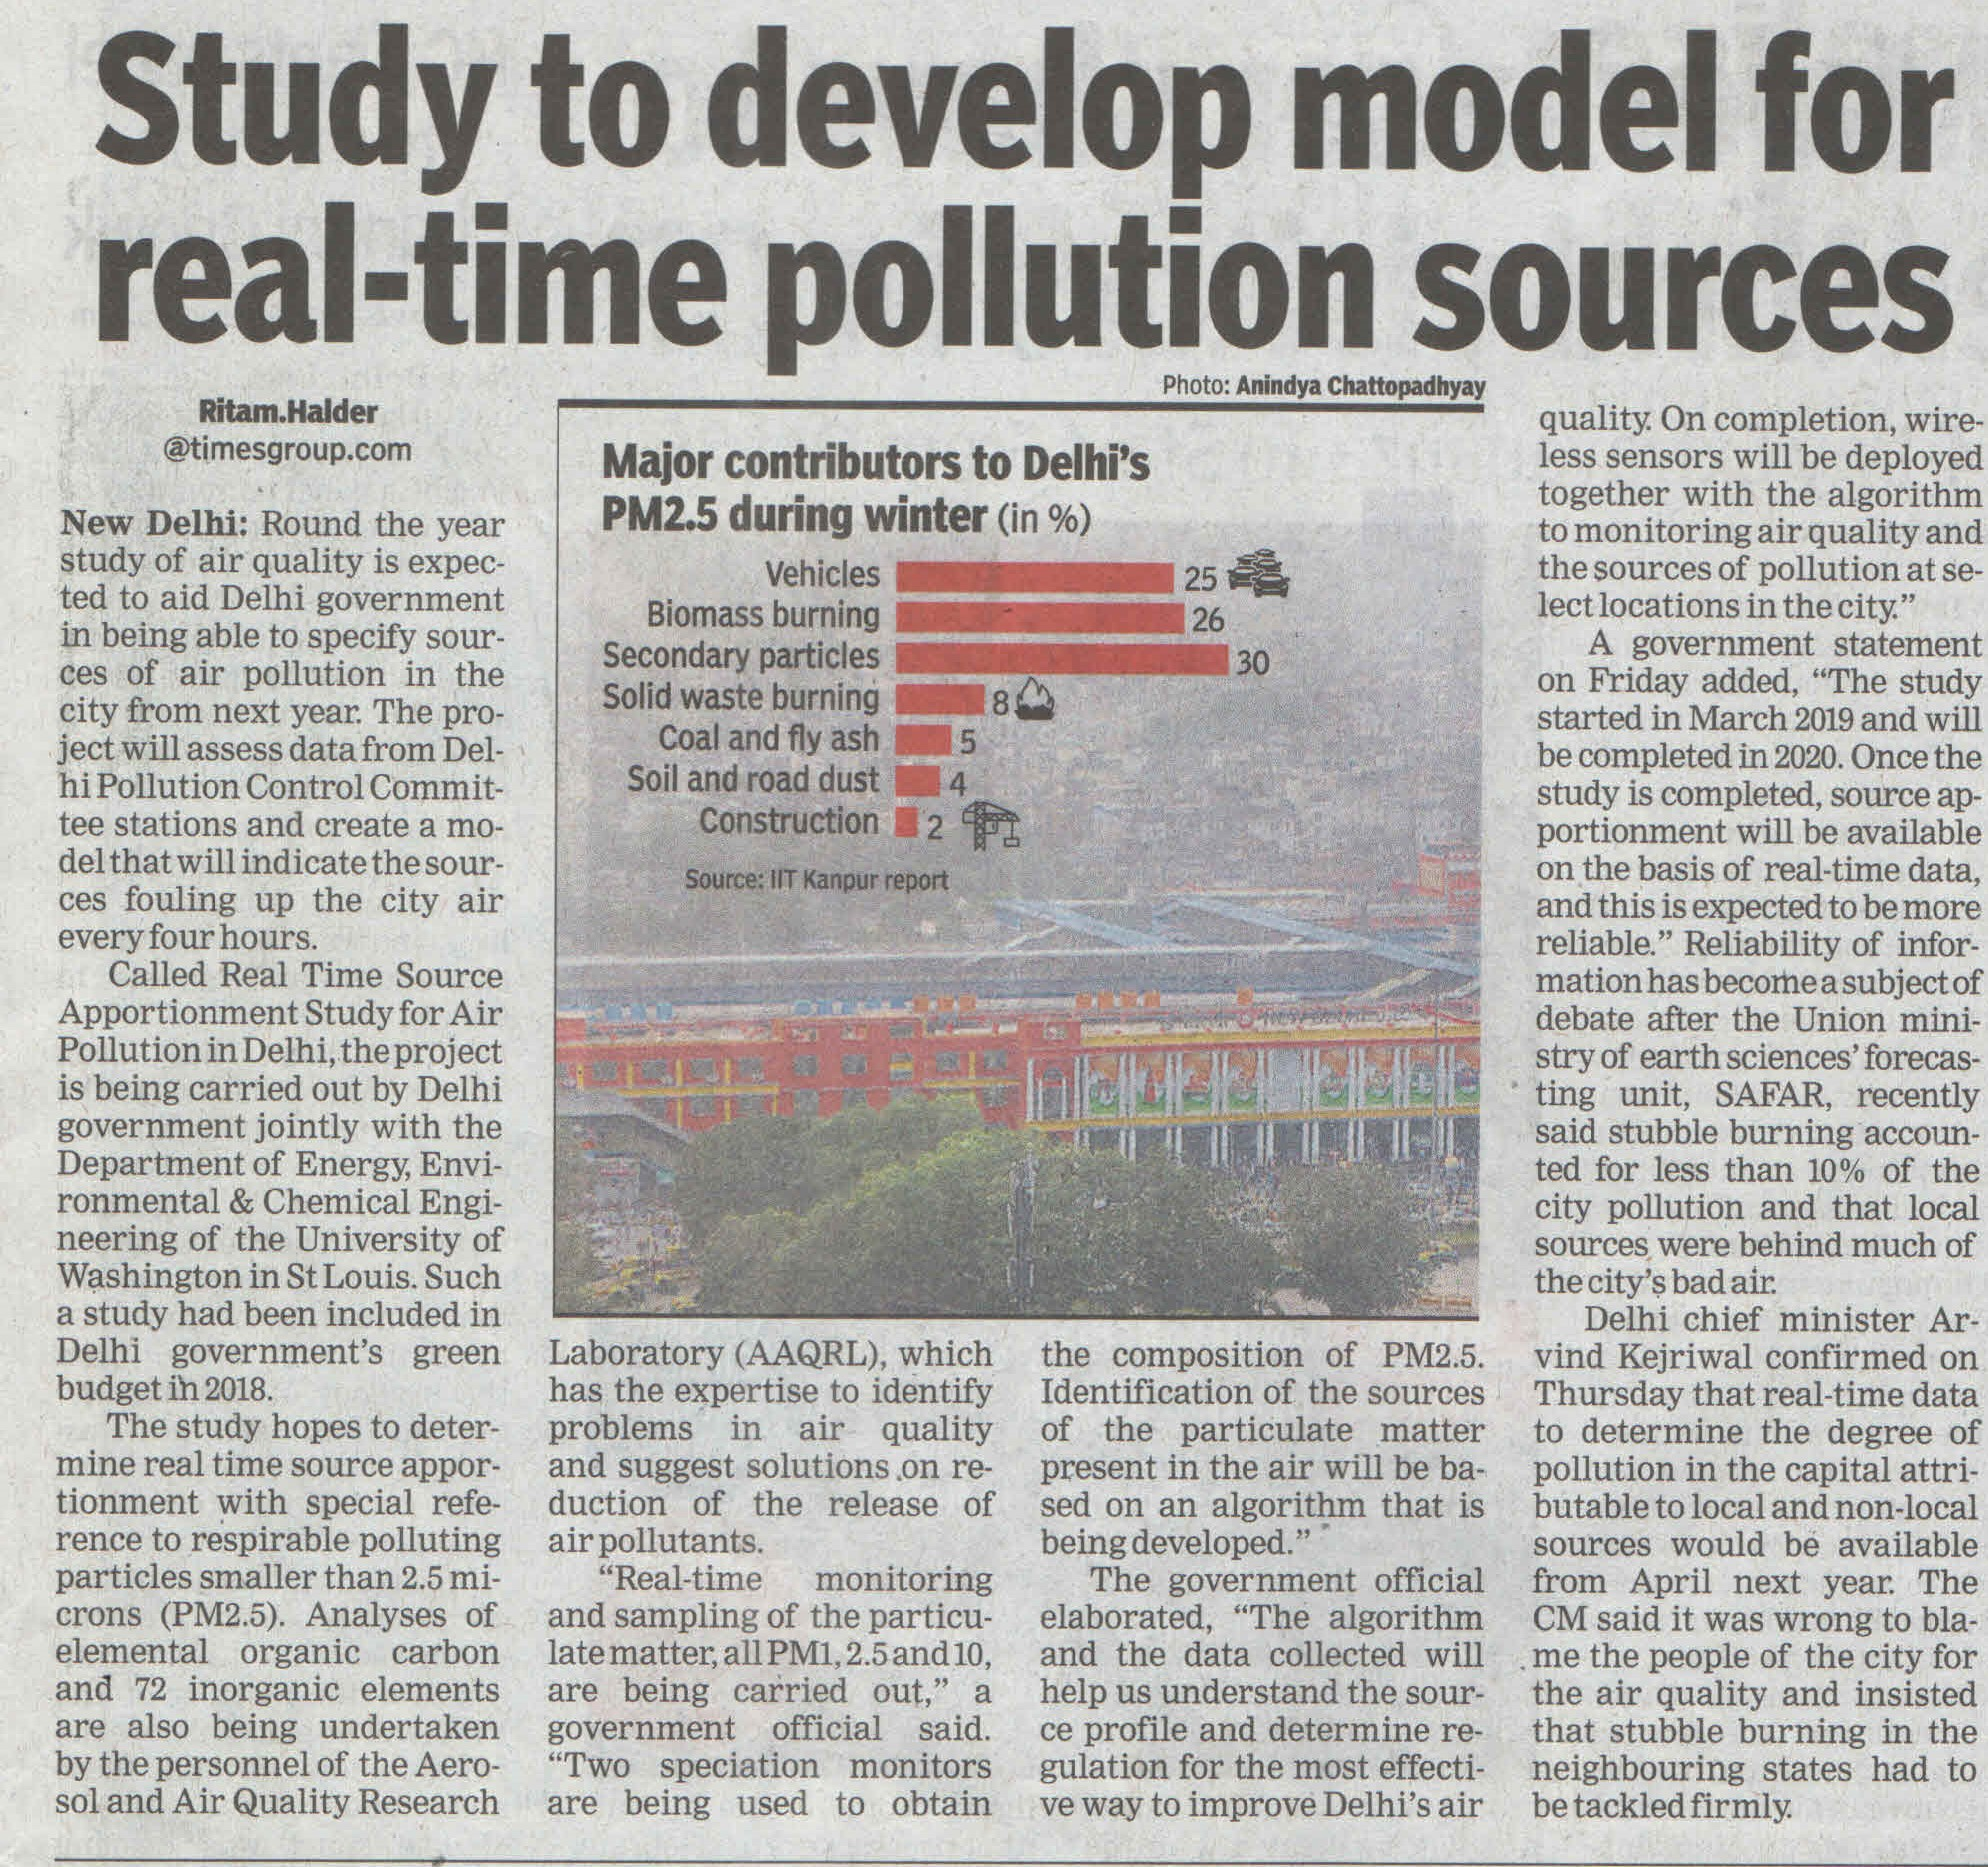 Study to develop model for real-time pollution sources